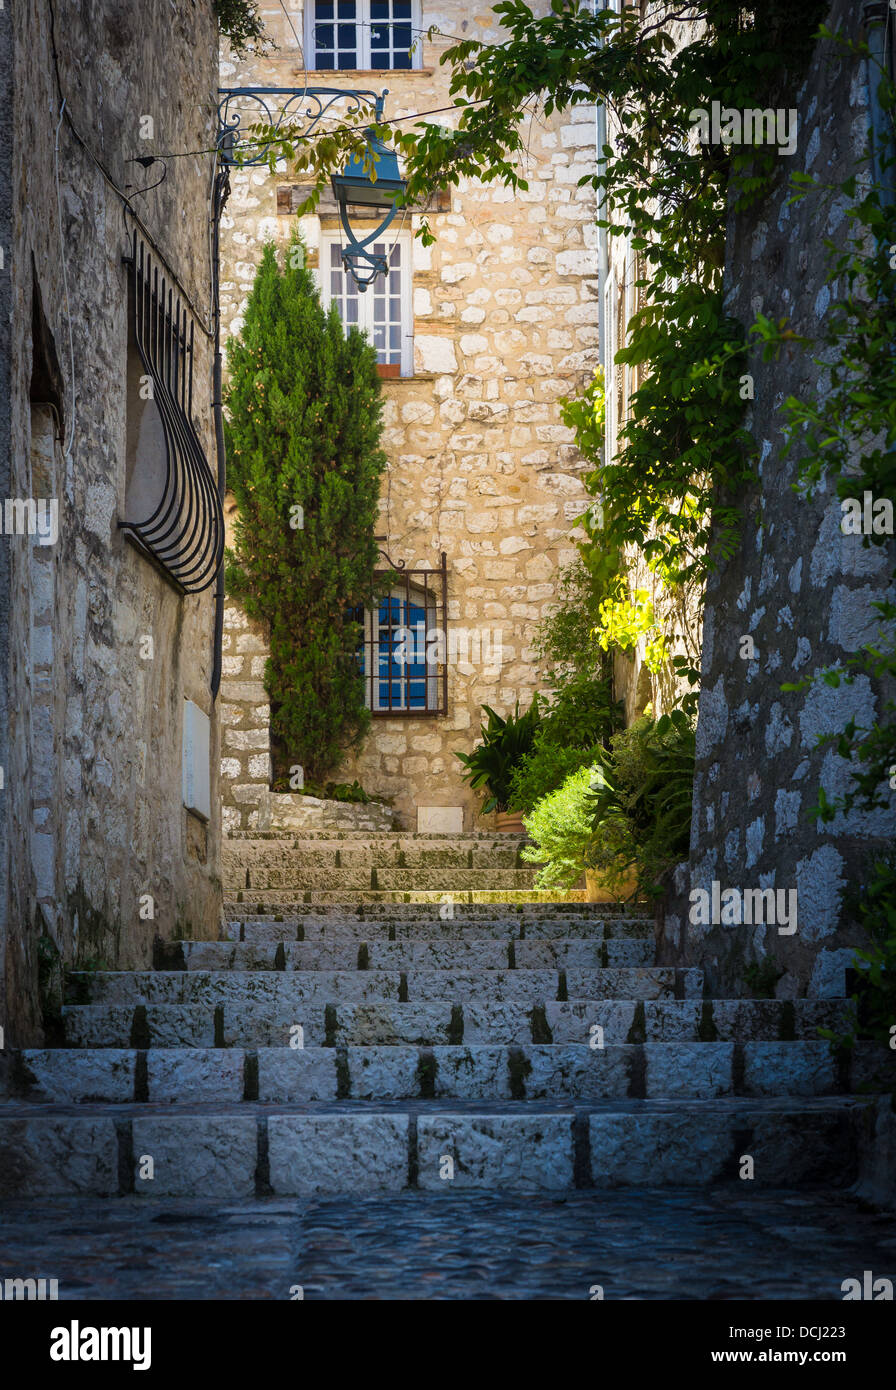 Stairs and homes in Saint Paul de Vence in France - Stock Image